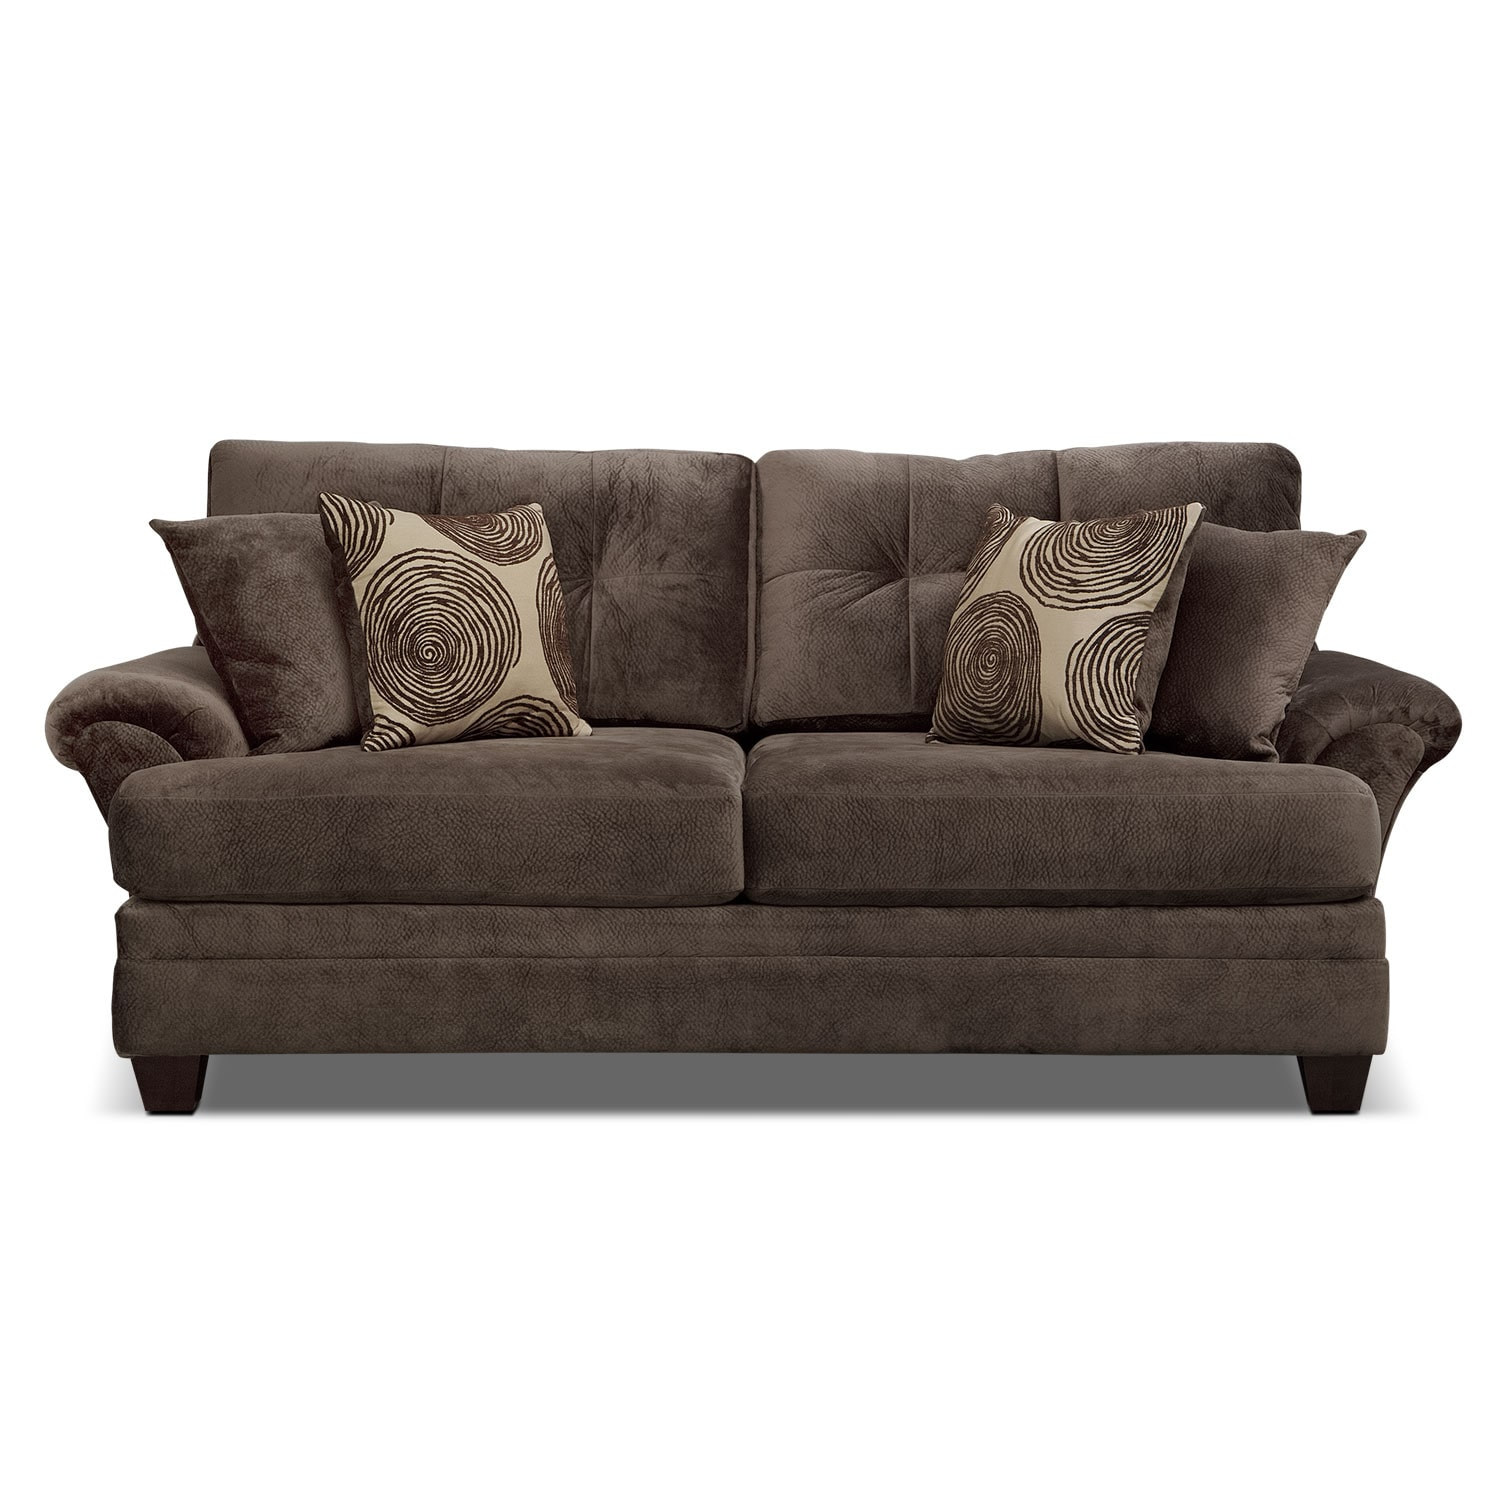 Cordelle Sofa Chocolate Value City Furniture And Mattresses